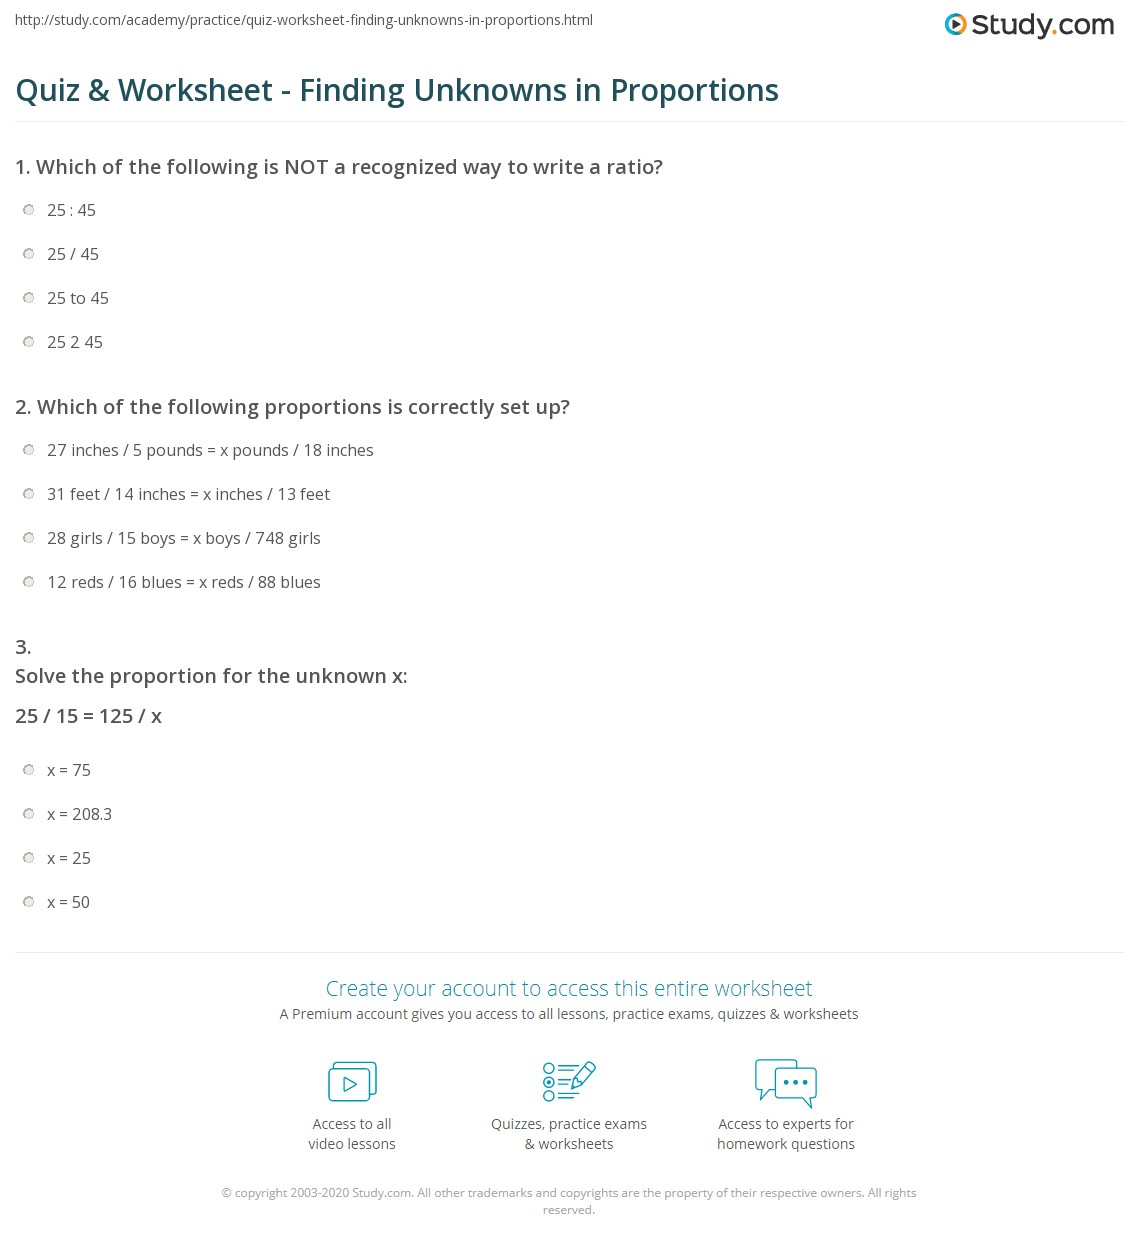 hight resolution of Quiz \u0026 Worksheet - Finding Unknowns in Proportions   Study.com